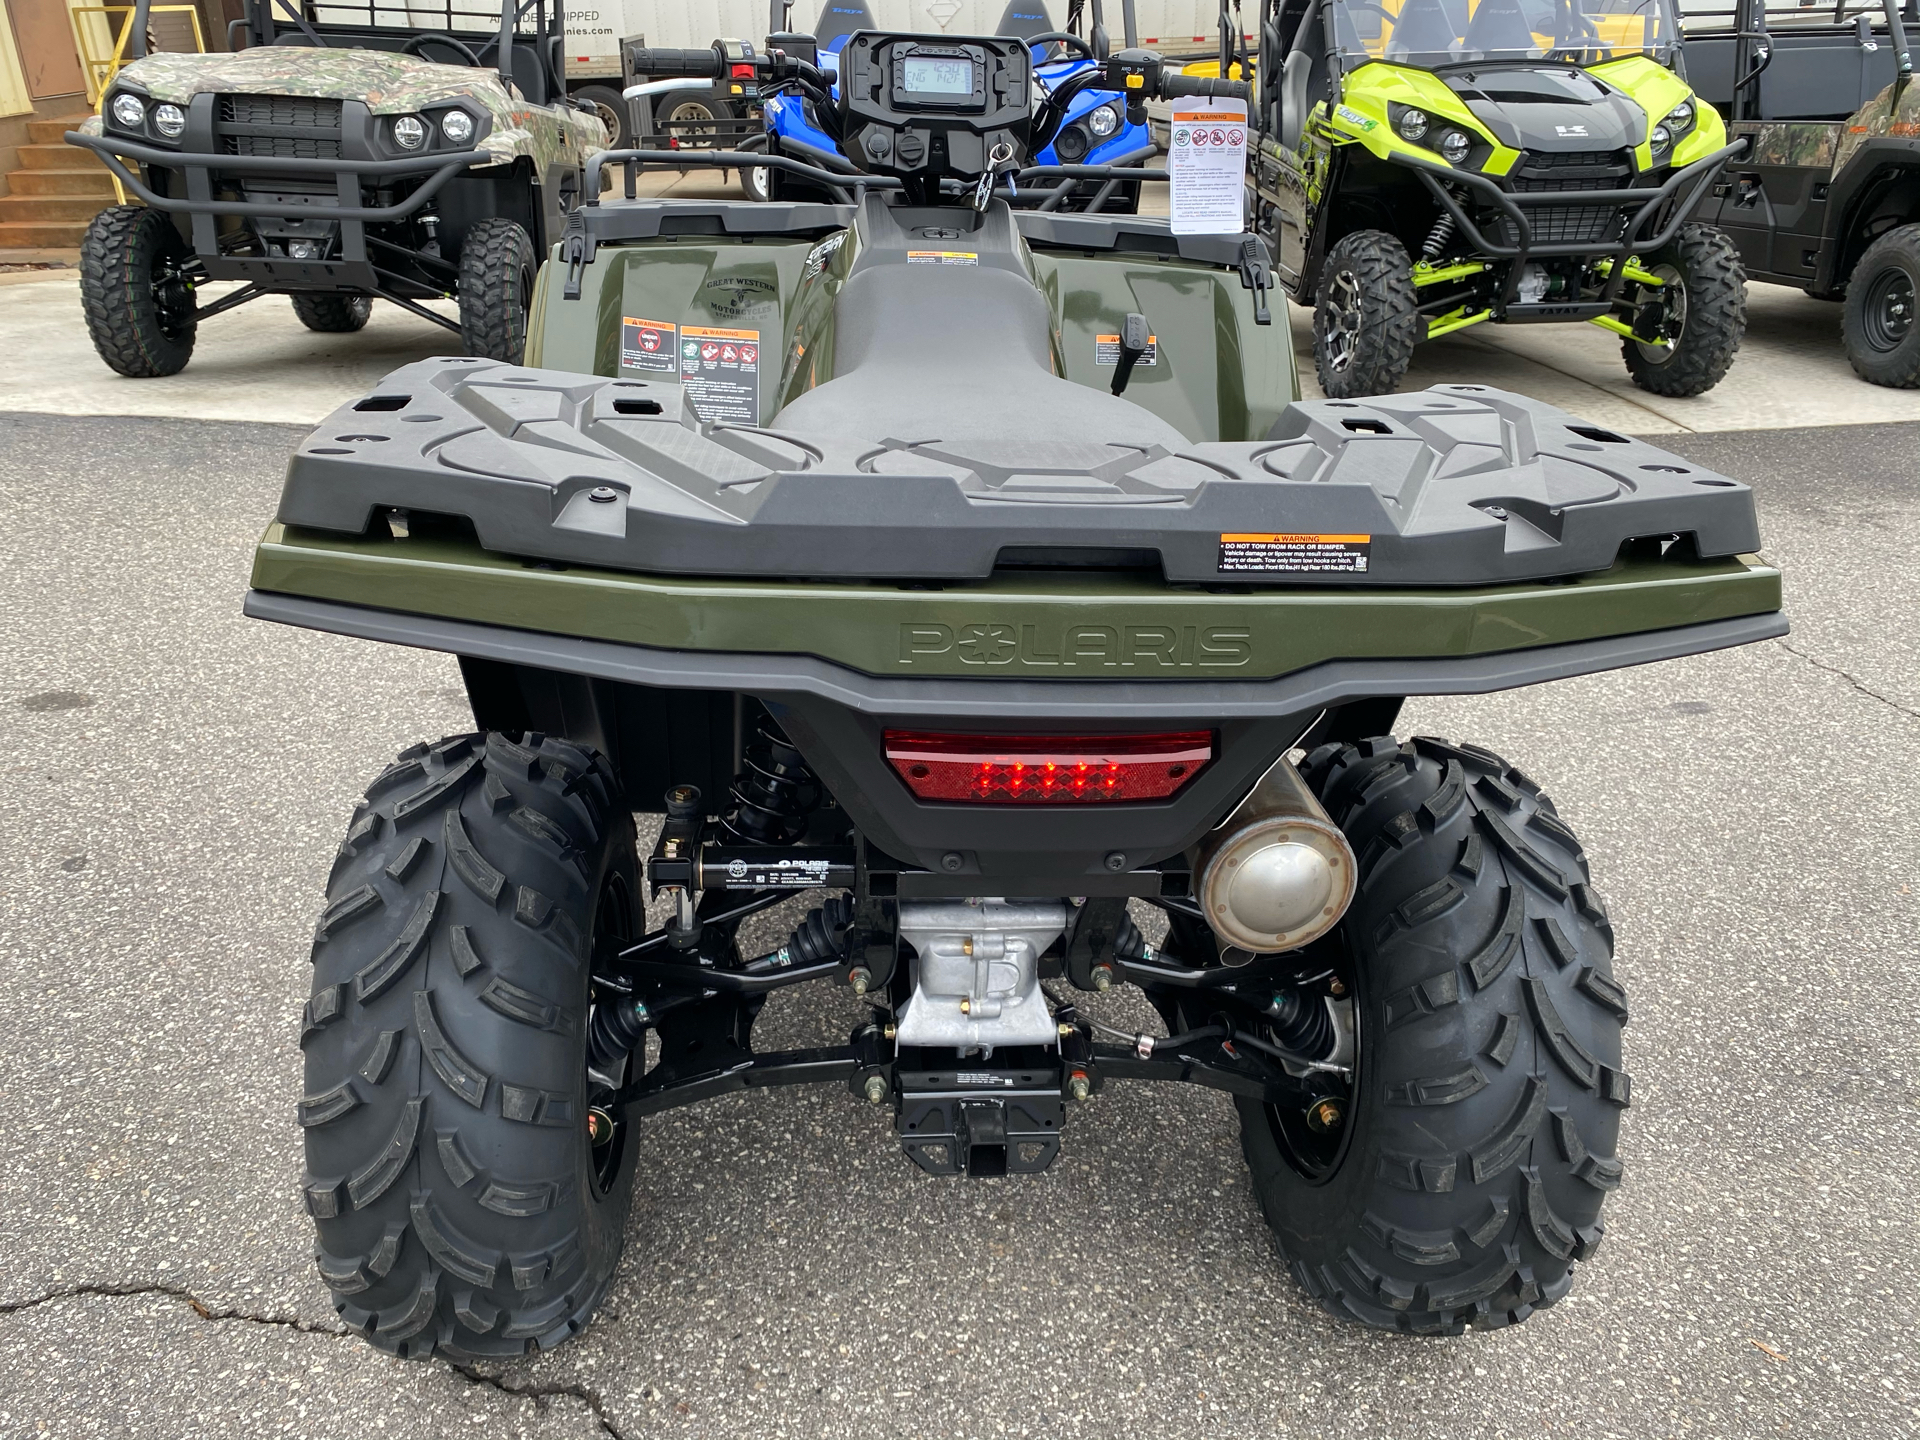 2021 Polaris Sportsman 450 H.O. in Statesville, North Carolina - Photo 5